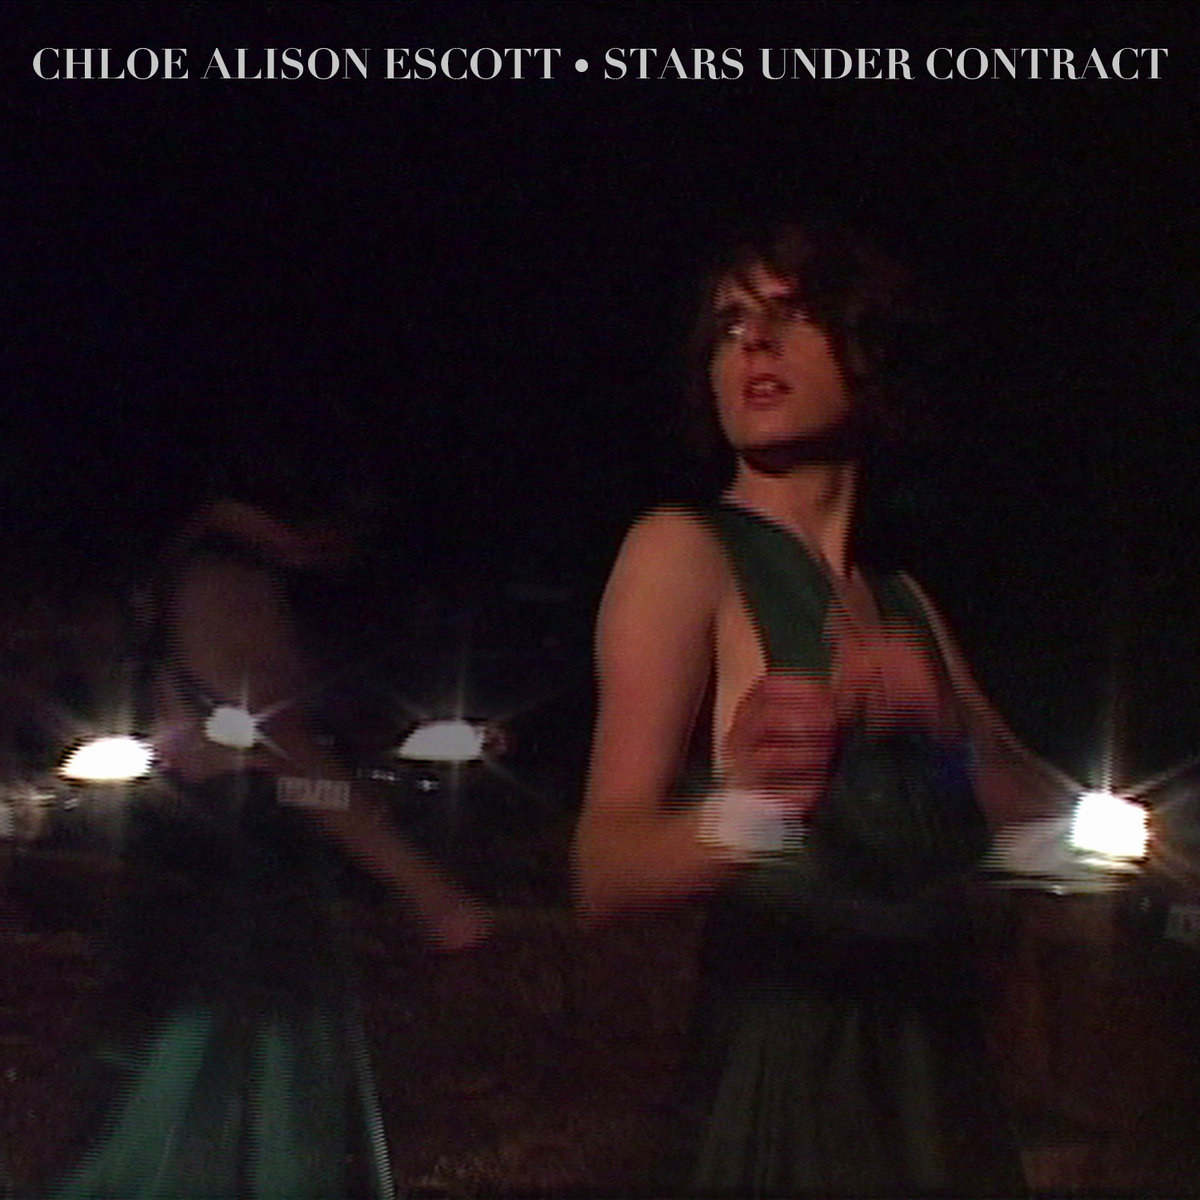 Chloe Alison Escott Stars Under Contract album